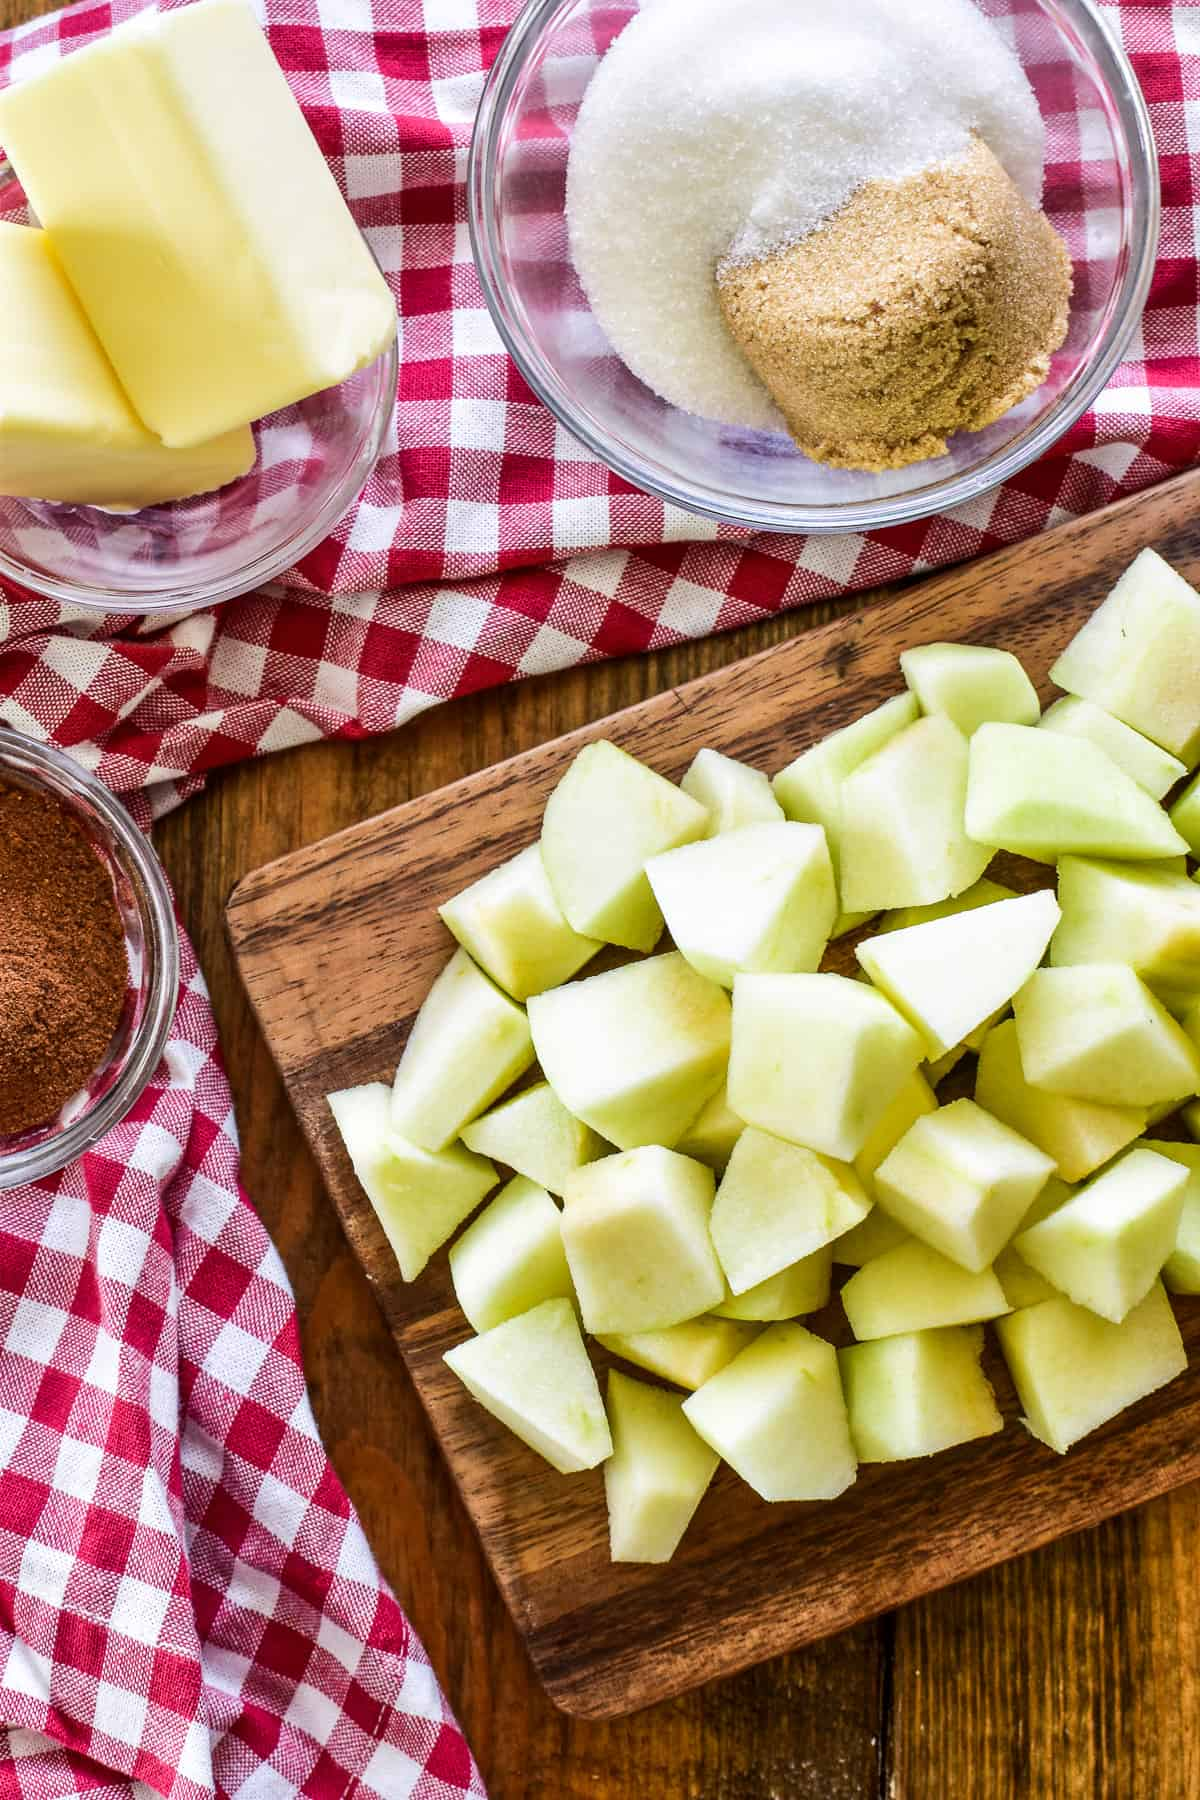 Chopped apples on a cutting board with other ingredients to make fried apples